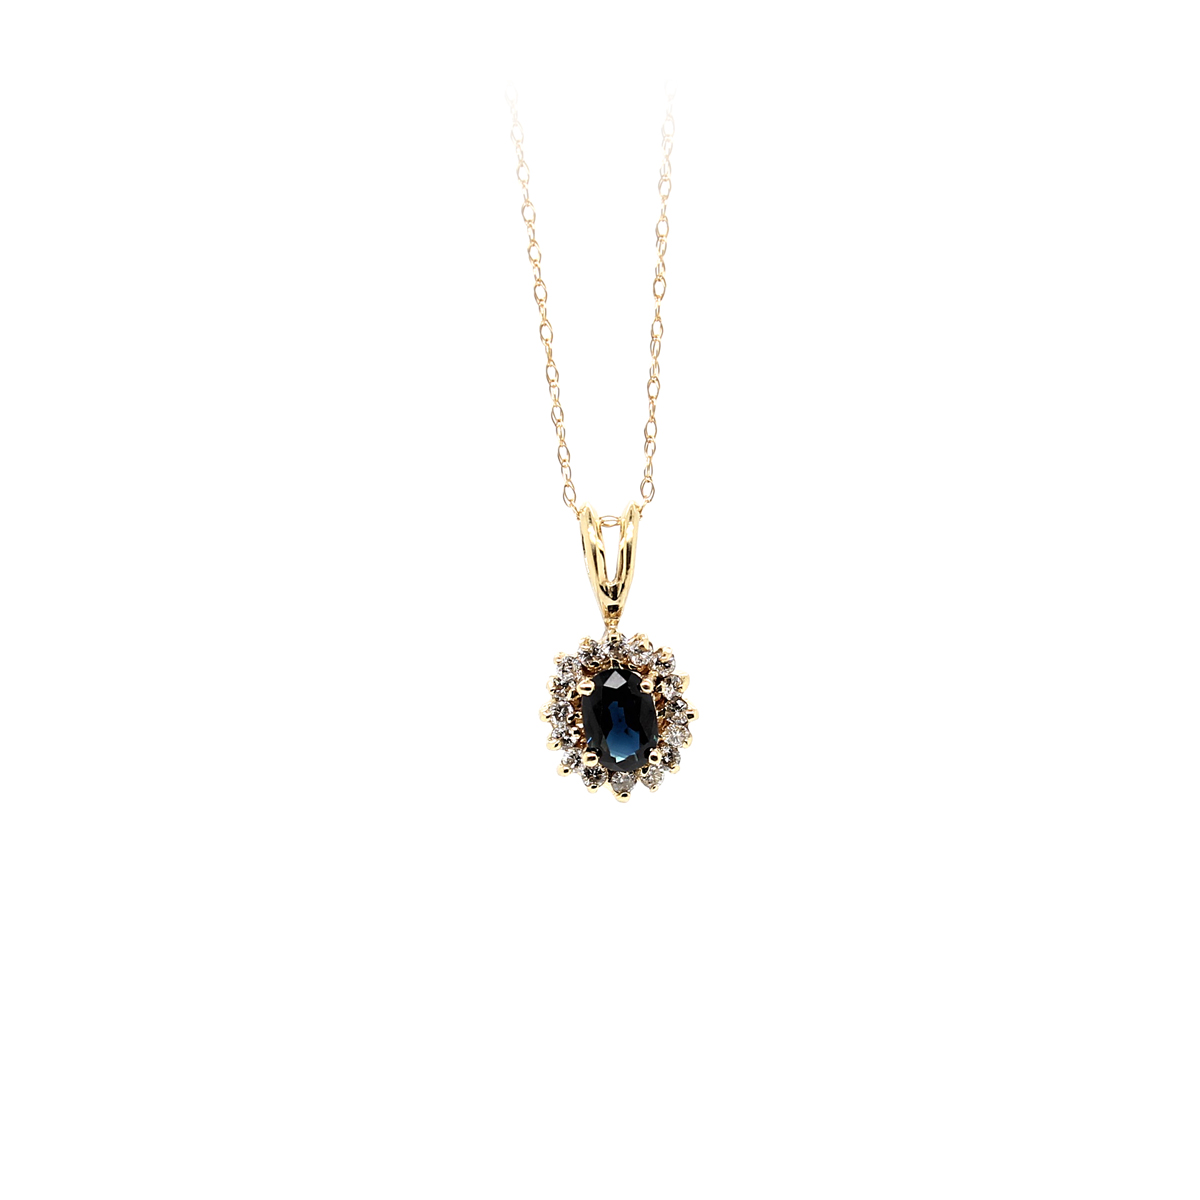 Vintage 14 Karat Yellow Gold Oval Blue Sapphire and Diamond Pendant Necklace